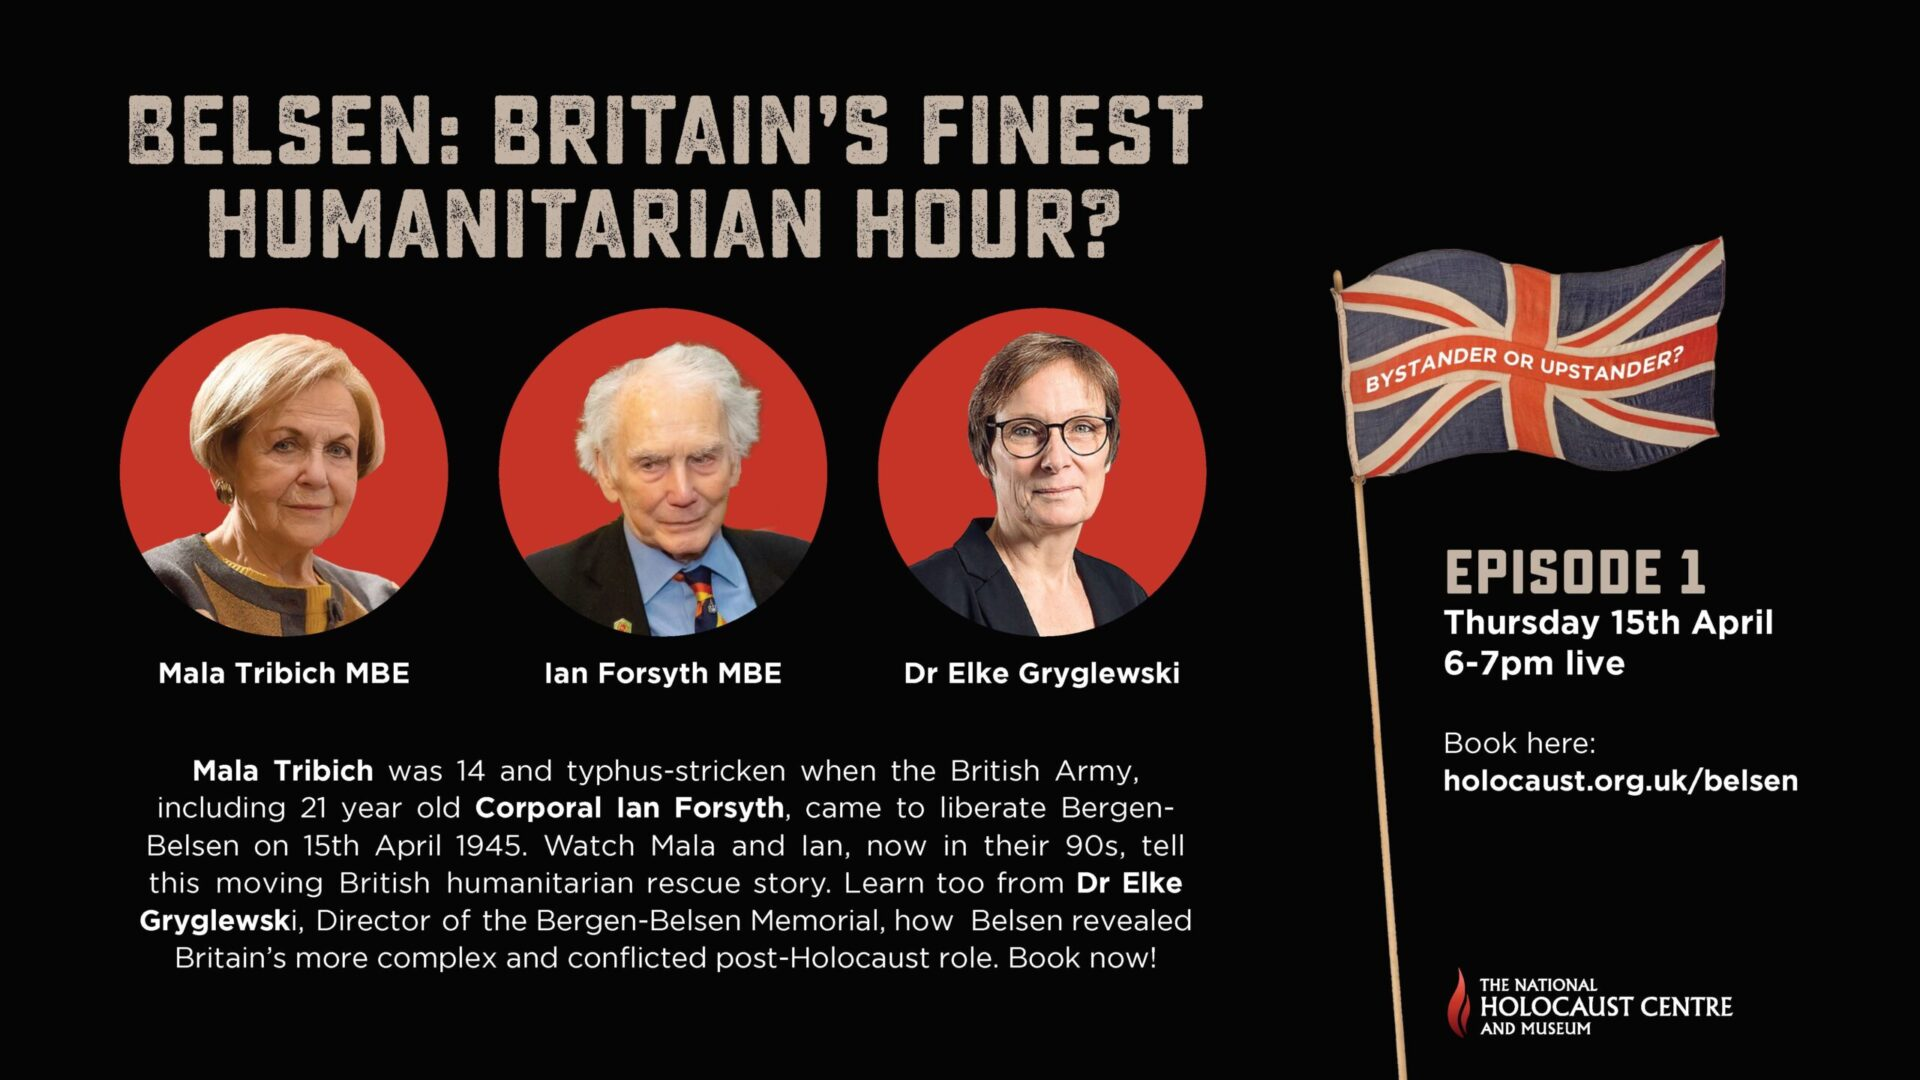 Belsen: Britain's Finest Humanitarian hour? virtual event poster at the National Holocaust Centre and Museum